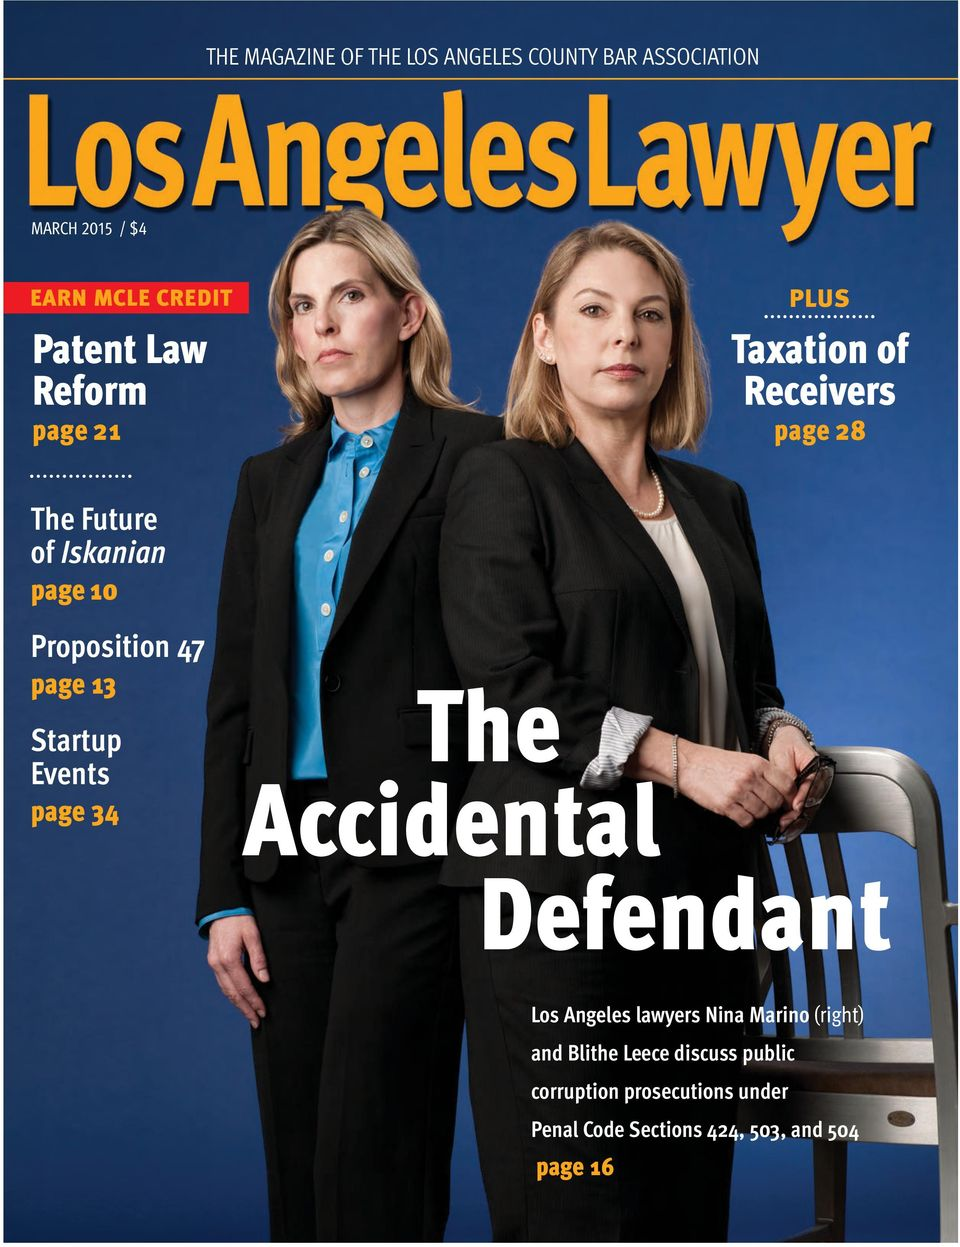 page 13 Startup Events page 34 The Accidental Defendant Los Angeles lawyers Nina Marino (right) and